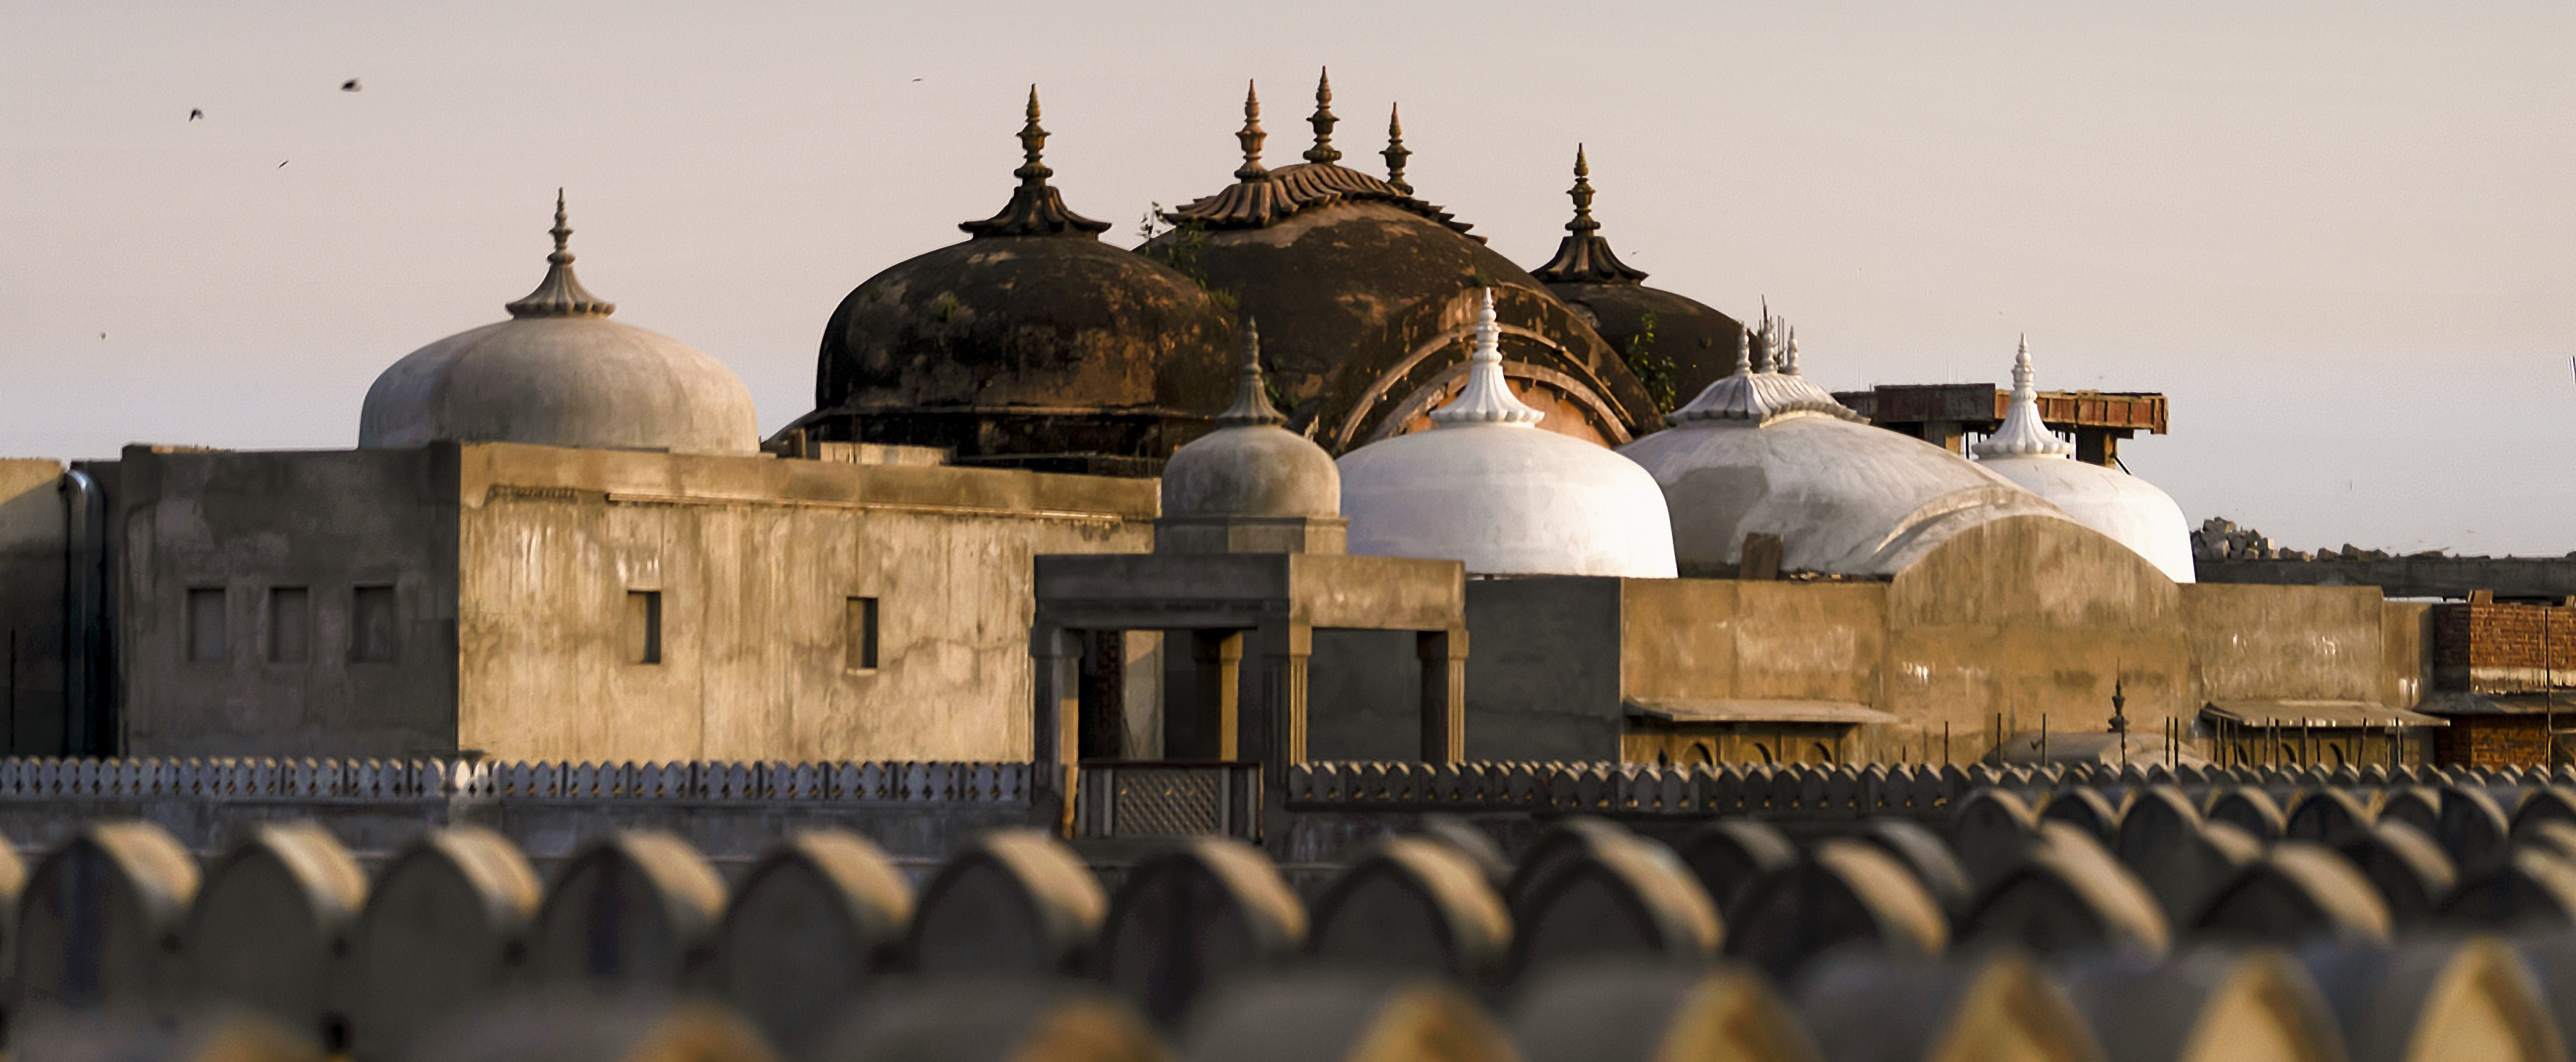 tailor-made-holidays-india